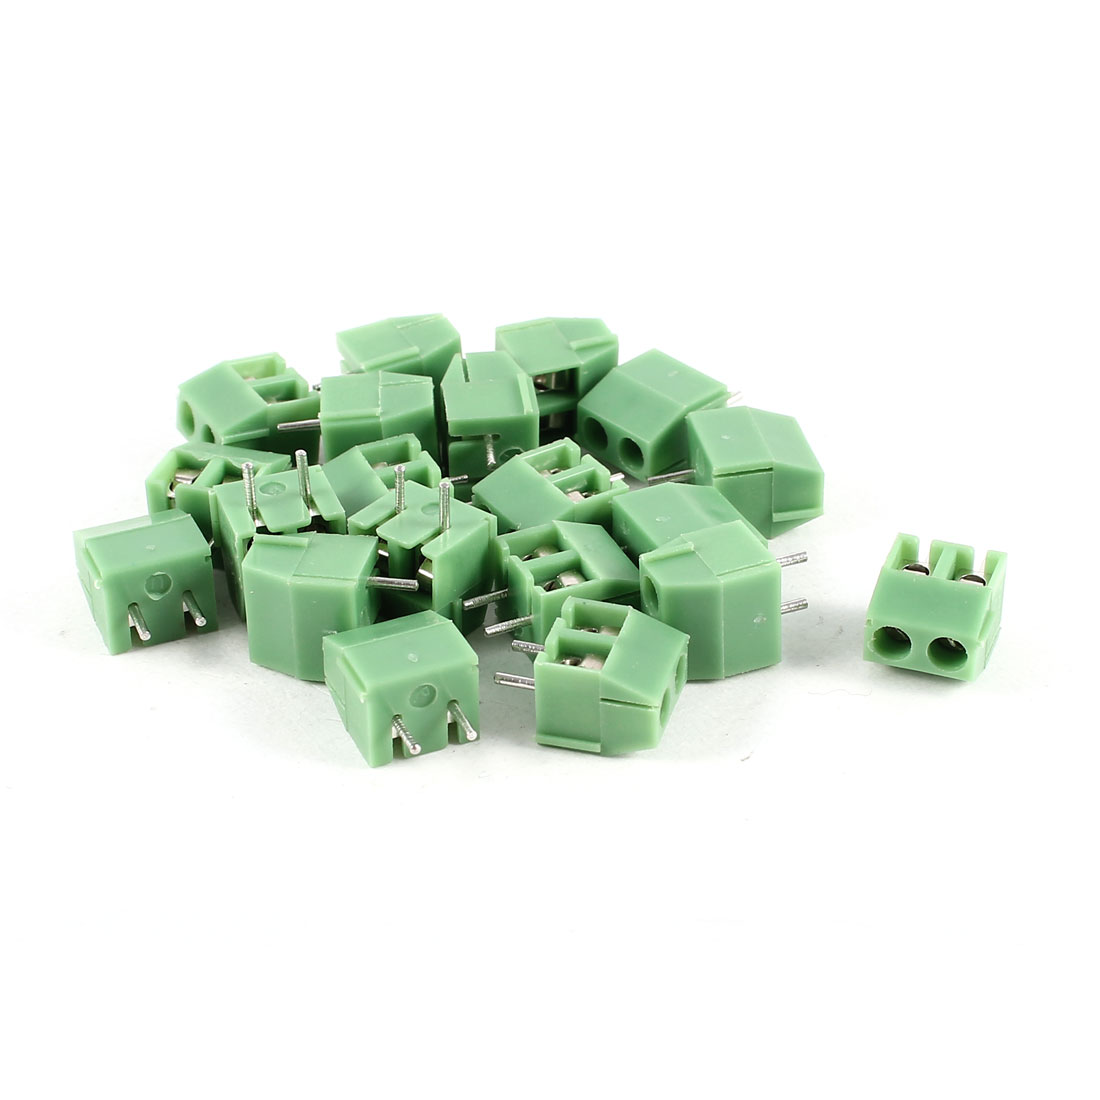 20 Pcs Green KF396-2P 2 Position 3.96mm Pitch PCB Mount Screw Terminal Block Connectors 300V 10A